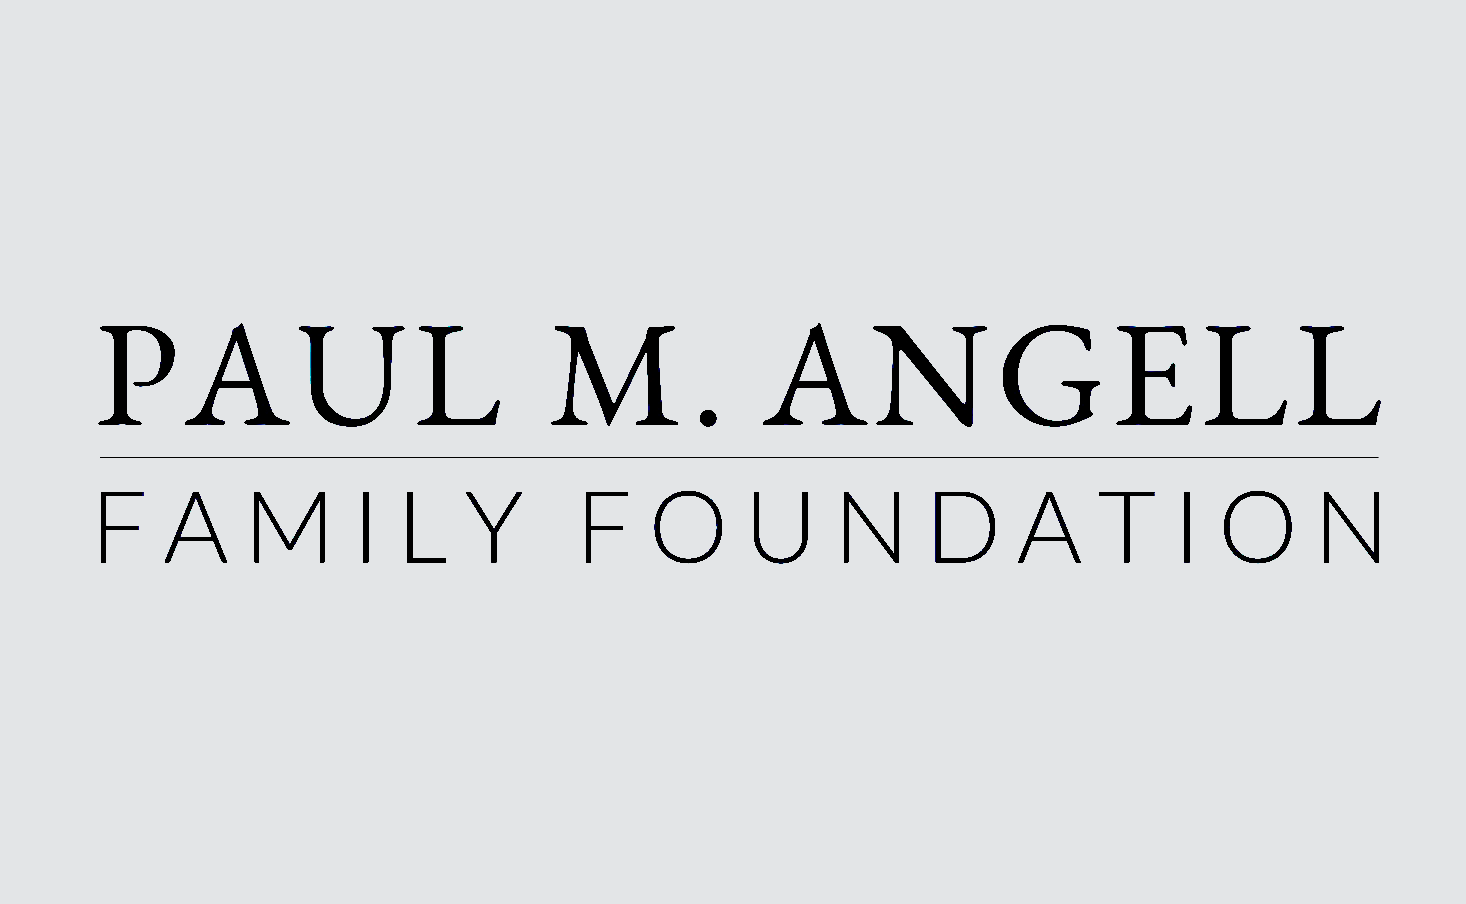 Paul M. Angell Family Foundation logo